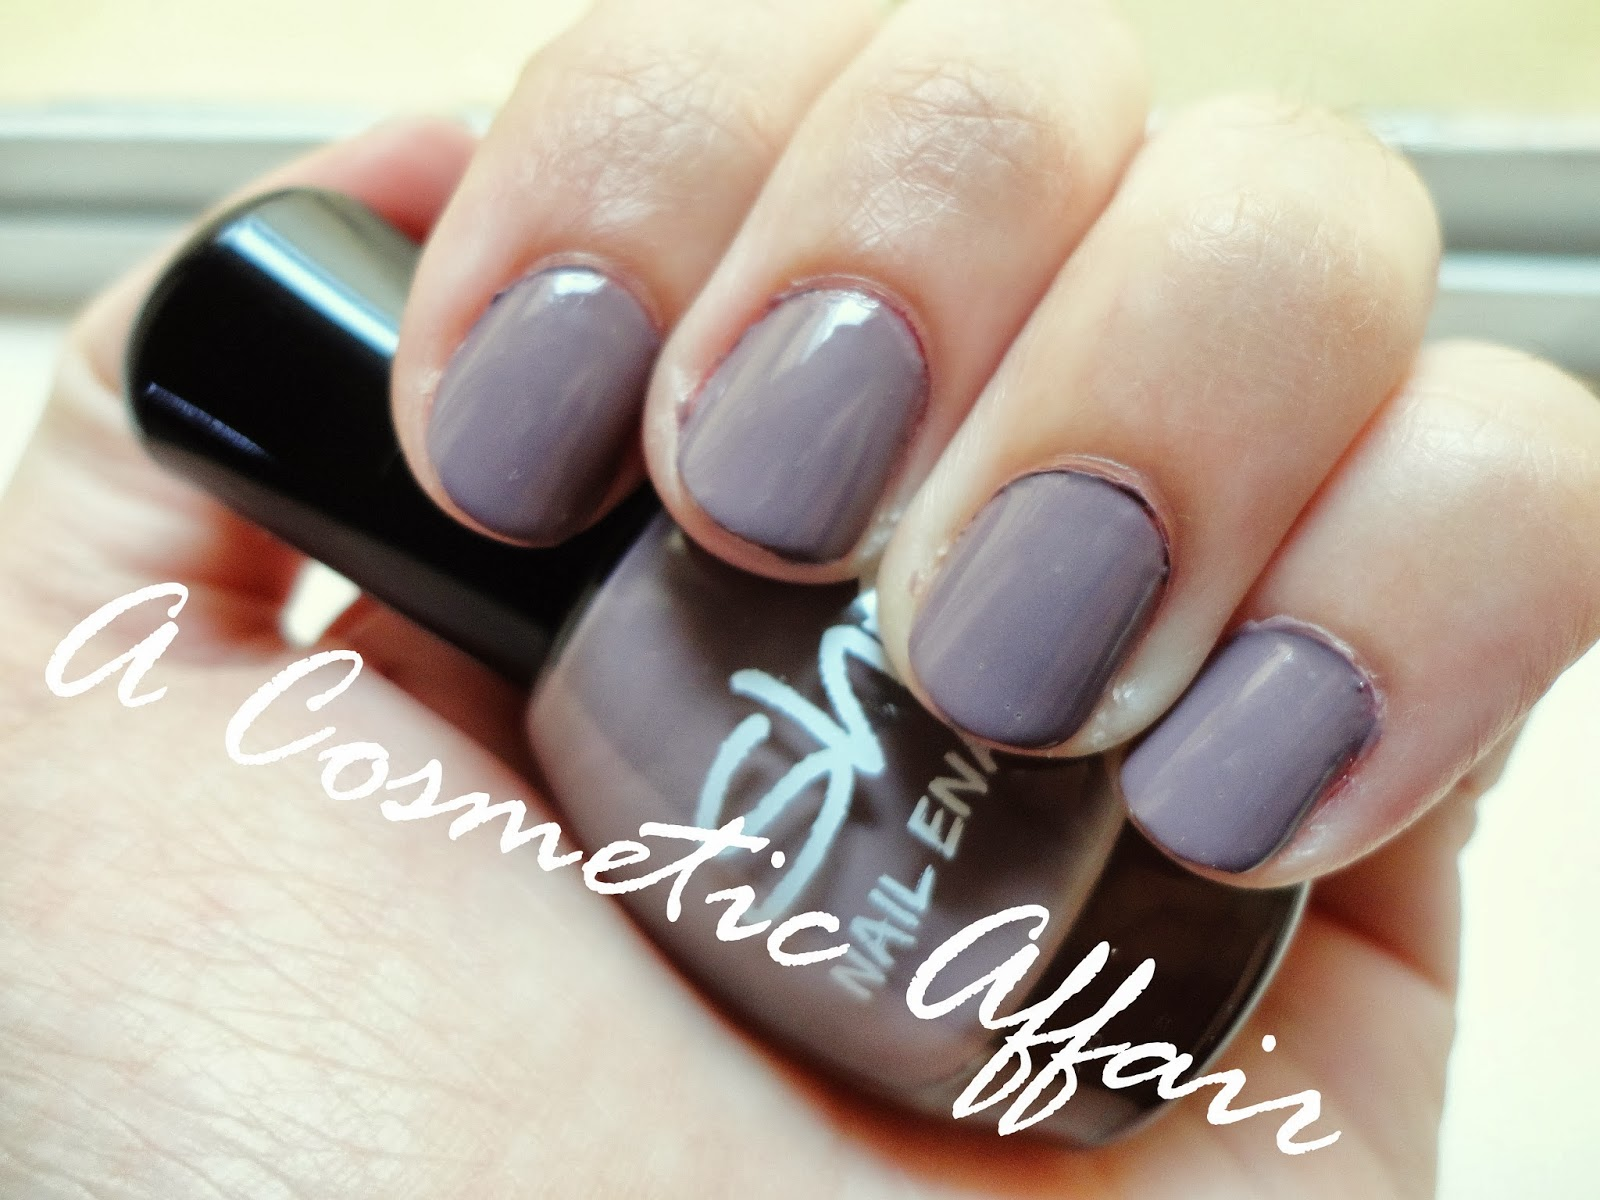 On my Nails: She Dirty Lilac Nail Polish | A Cosmetic Affair